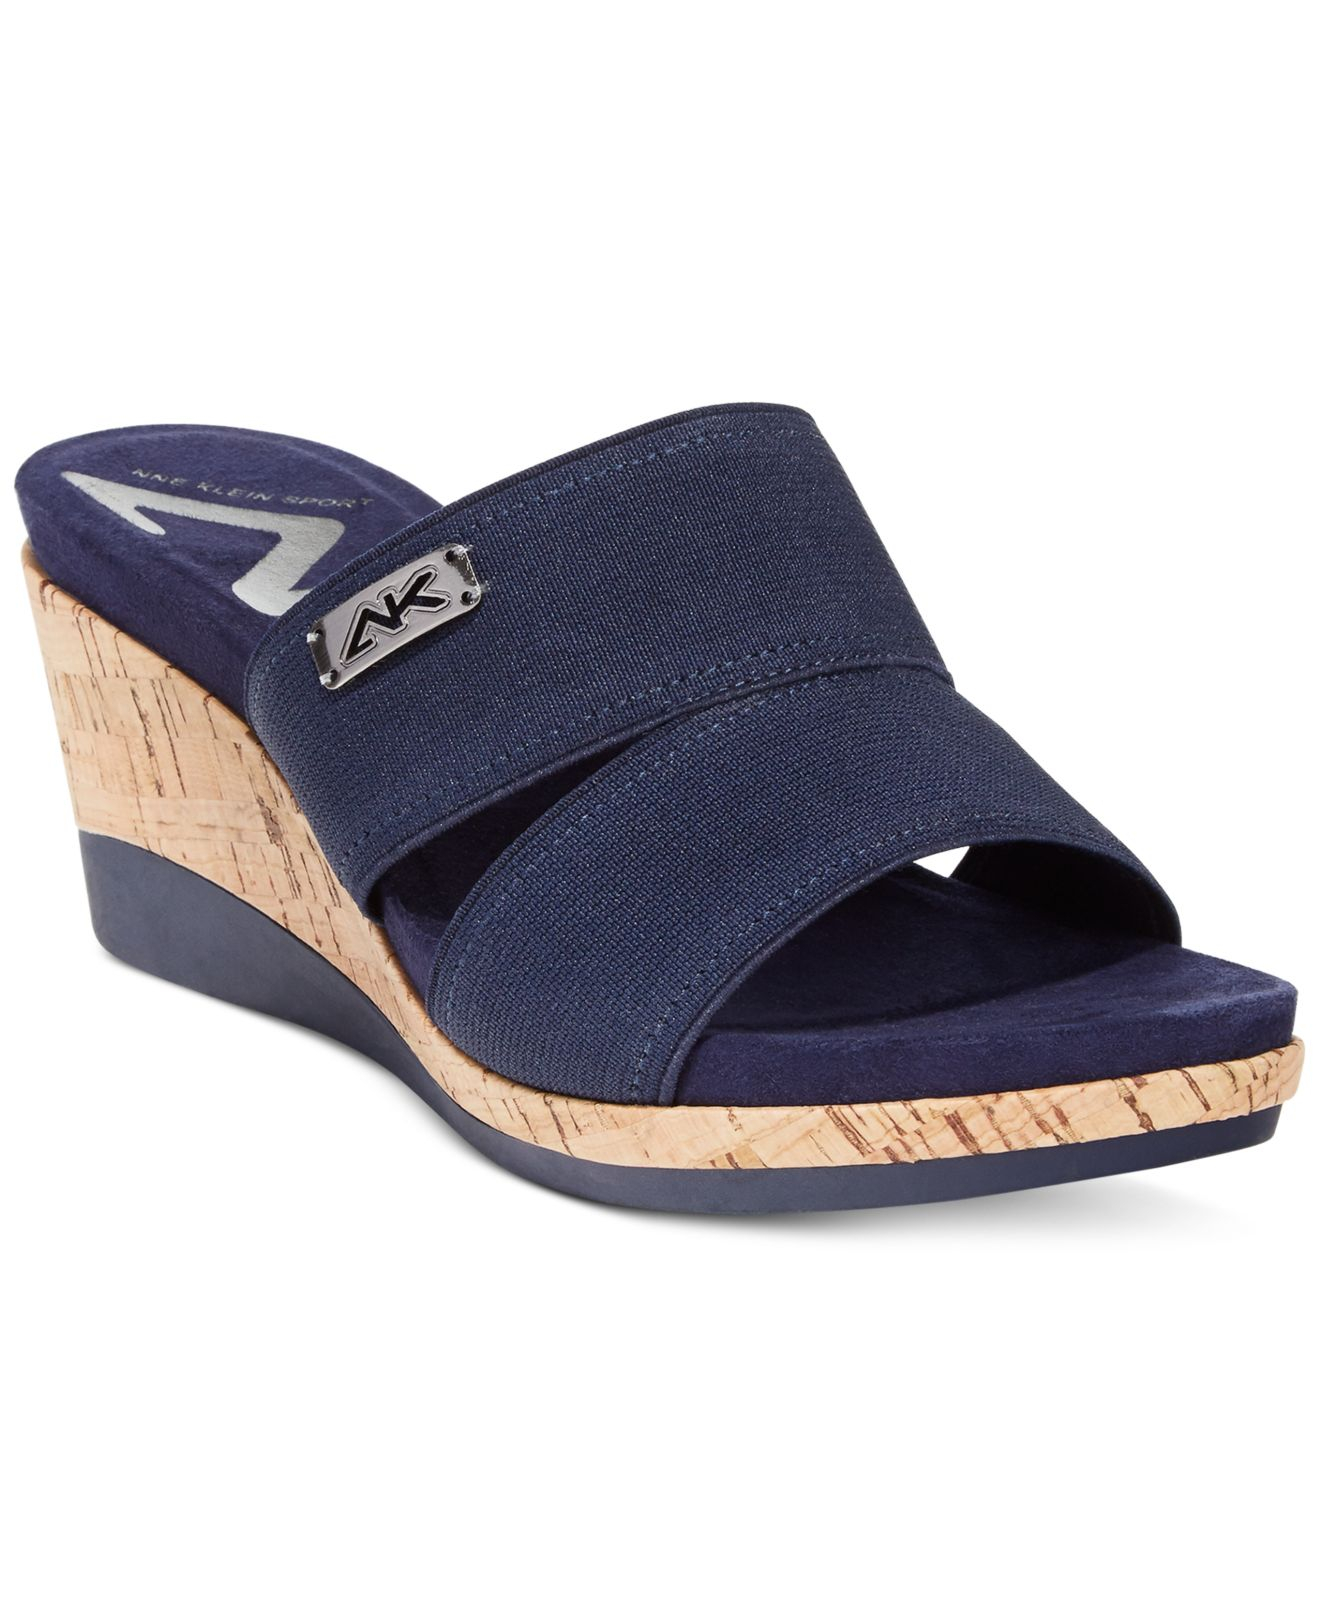 Anne Klein Shoes In Stores